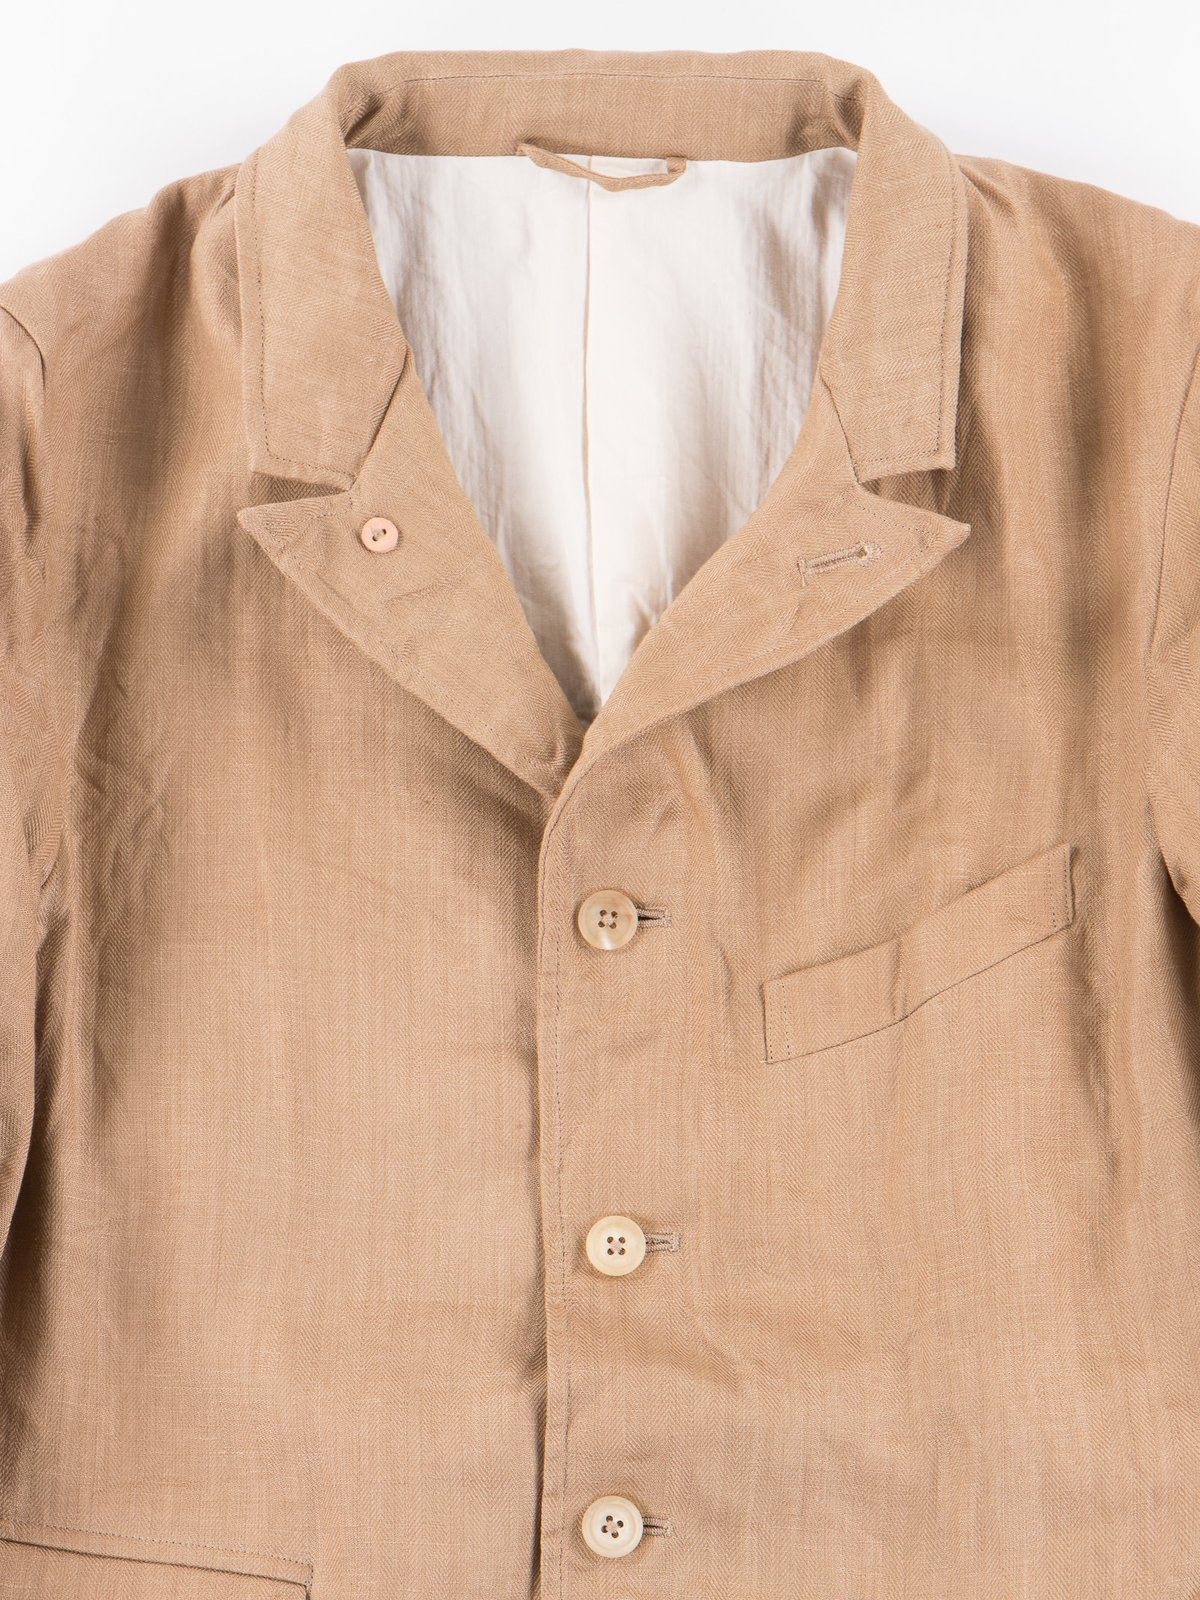 Beige Linen Old Potter Jacket - Image 2